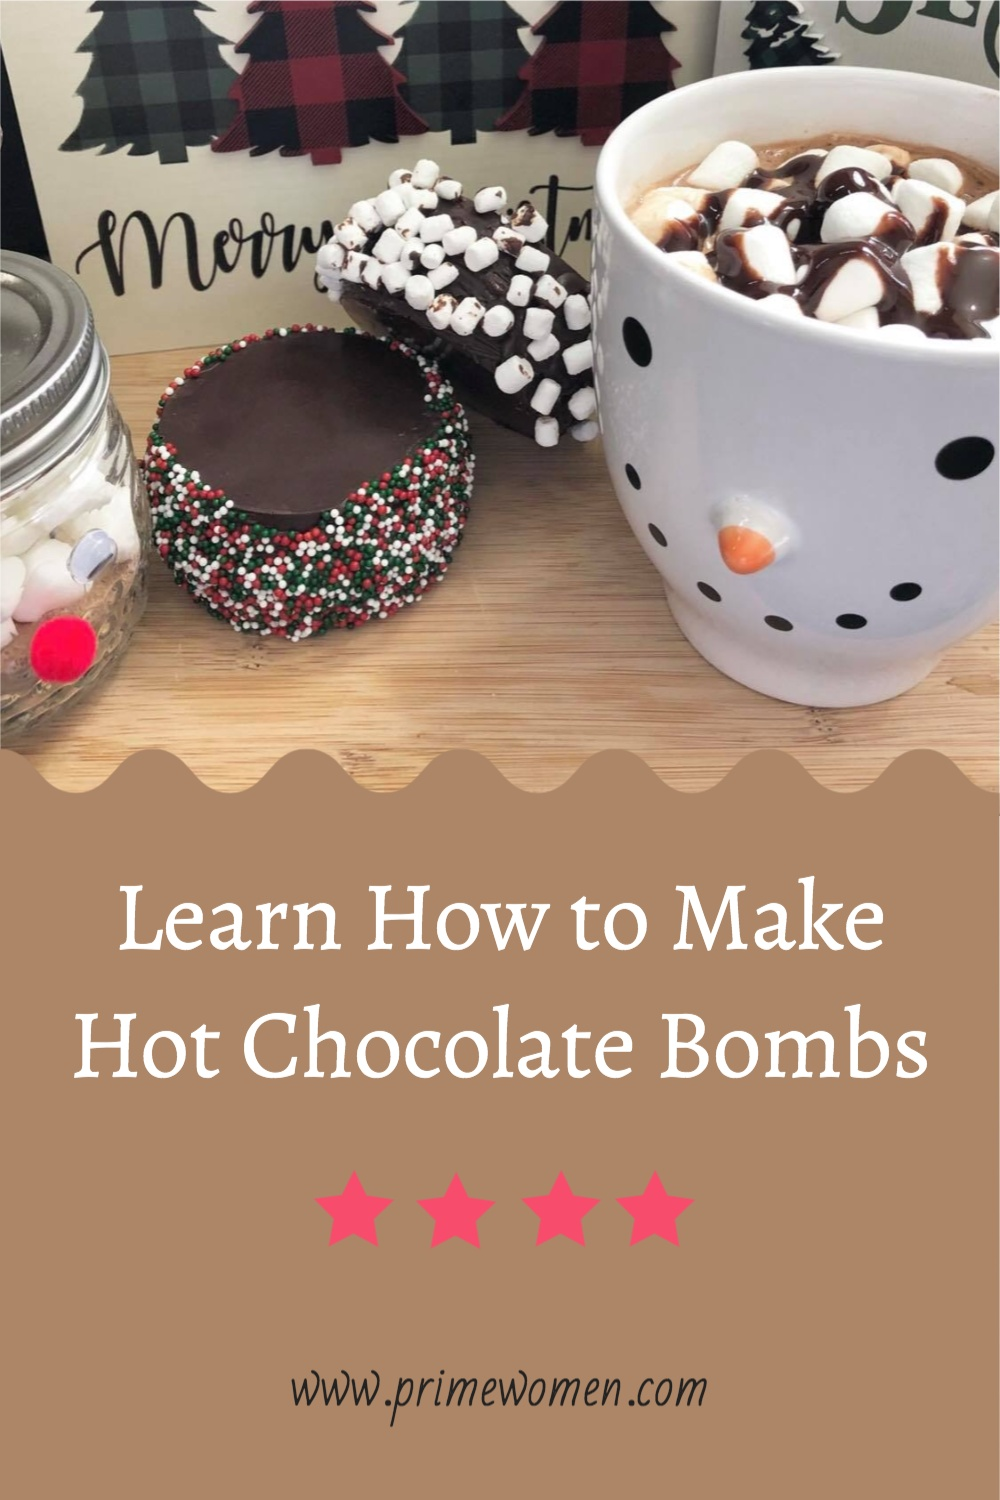 Learn how to make Hot Chocolate Bombs